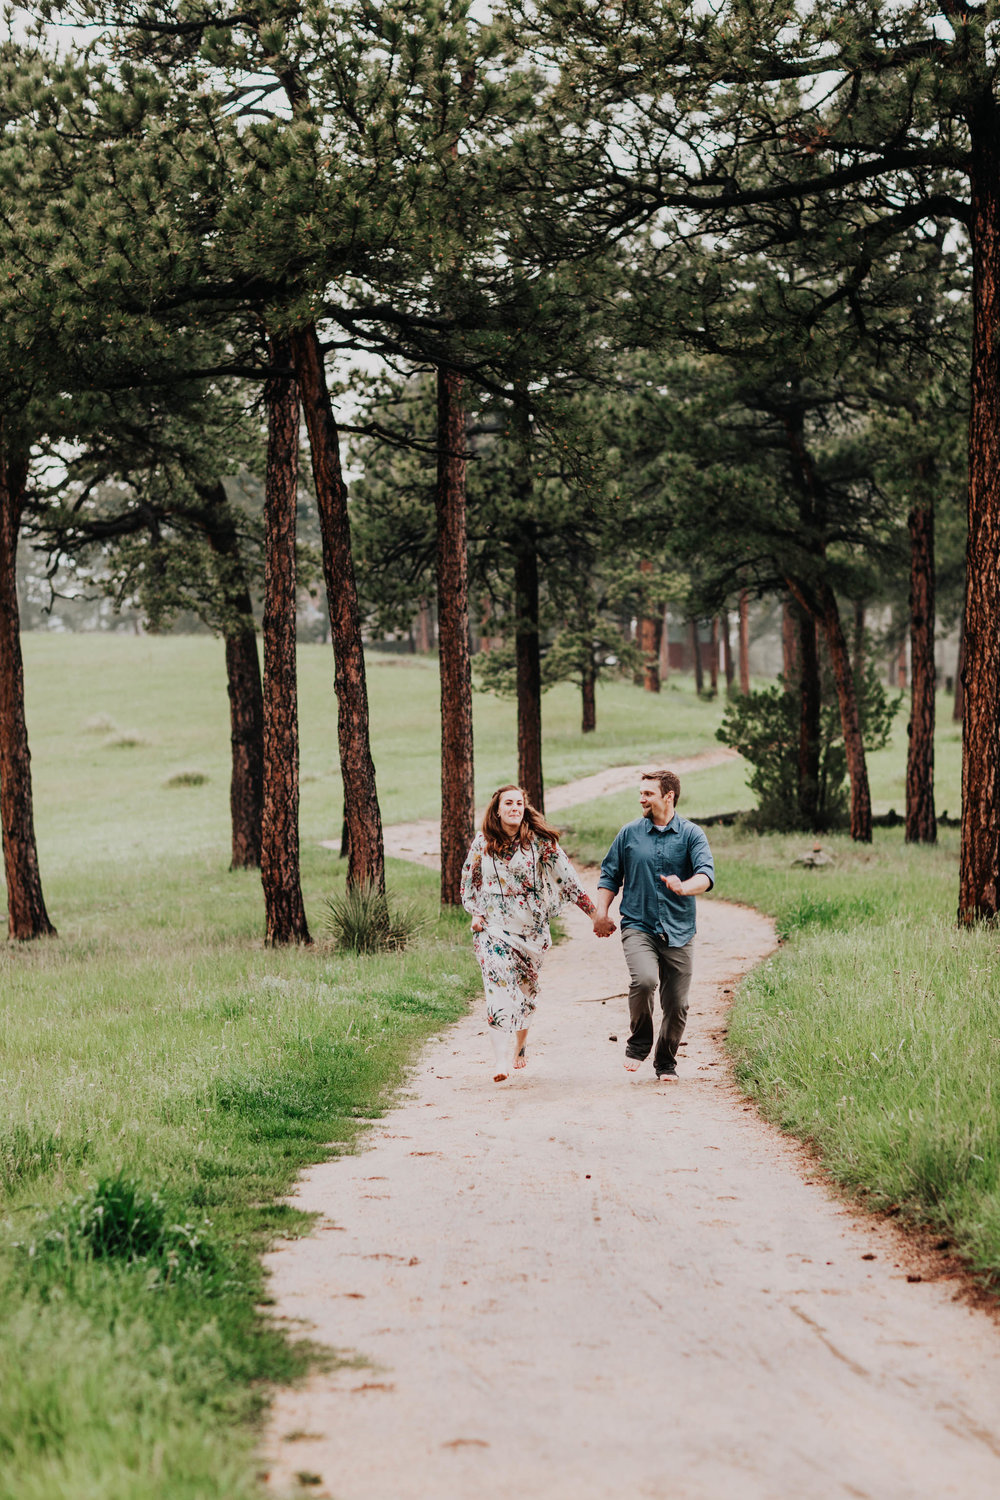 Sheena_Shahangian_Photography_Engagement_Photo_Shoot_Shelby_and_Andrew_Boulder_Colorado-105.jpg